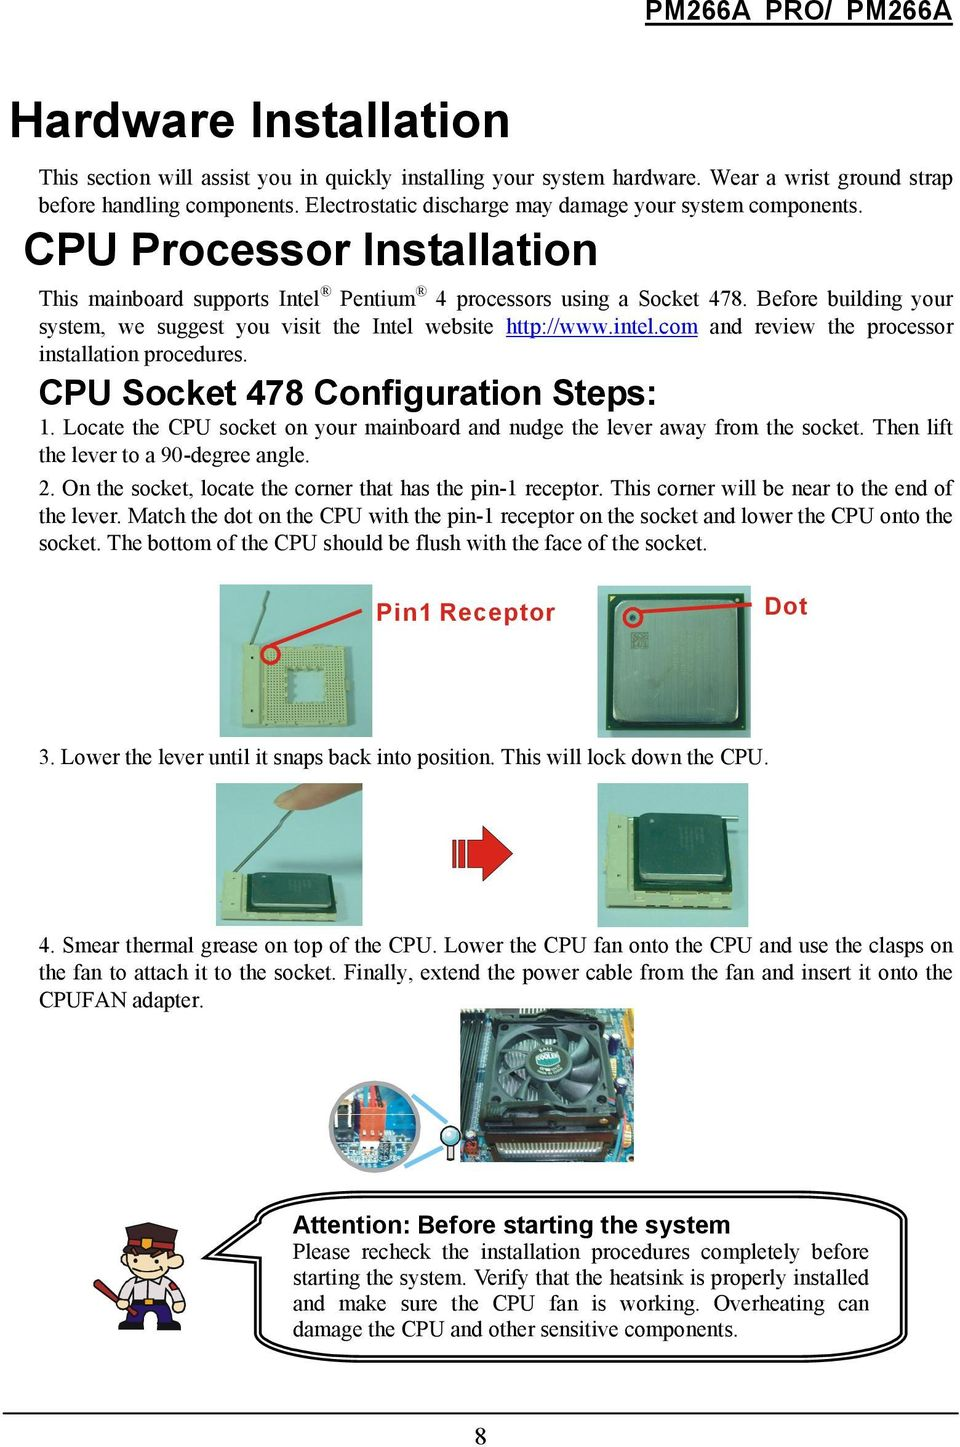 Before building your system, we suggest you visit the Intel website http://www.intel.com and review the processor installation procedures. CPU Socket 478 Configuration Steps:.